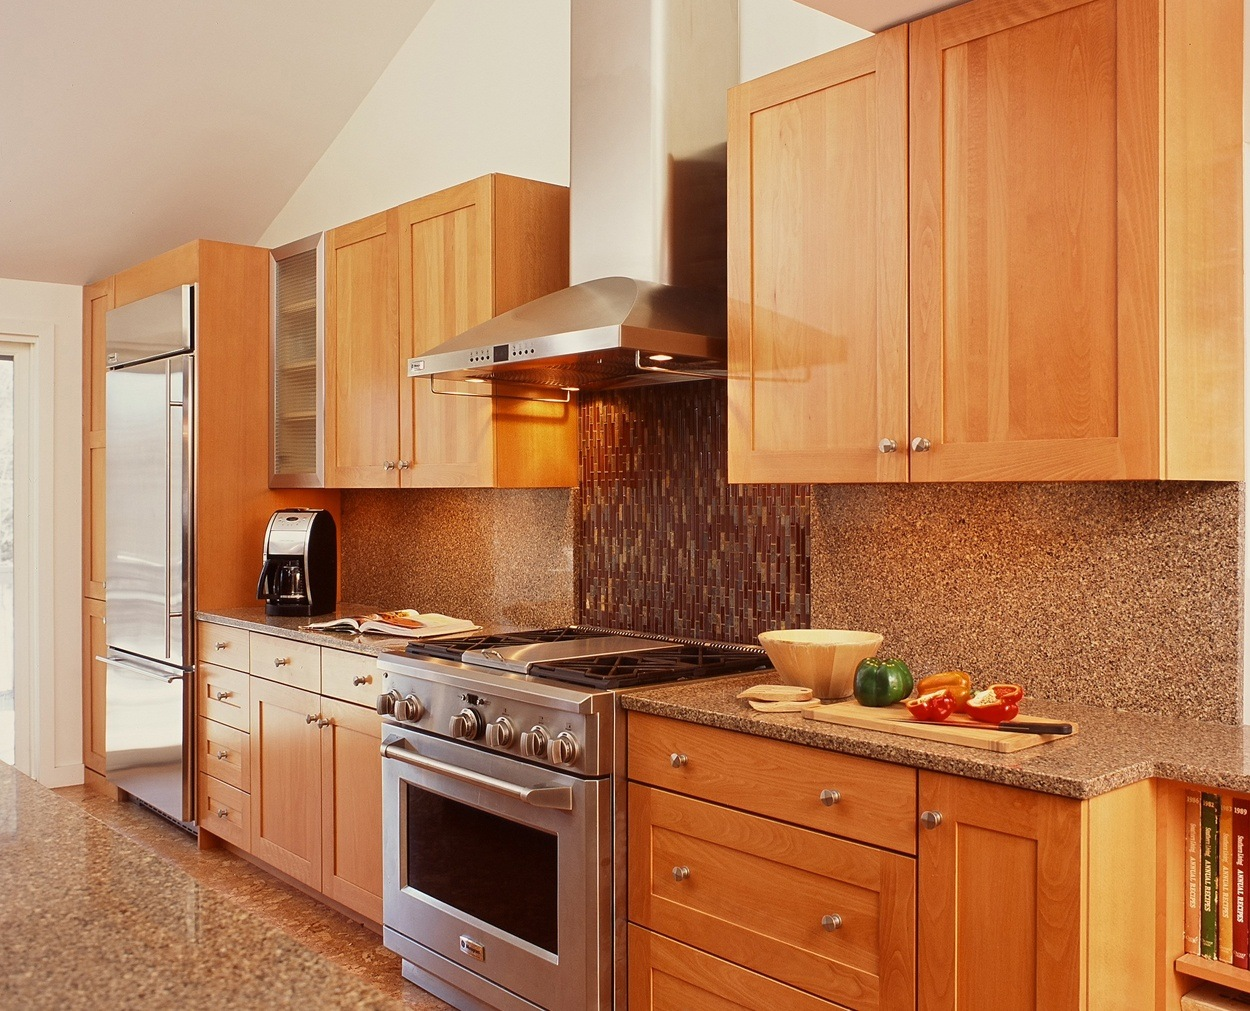 Lightly stained birch cabinets highlight this range wall in a remodeled kitchen.